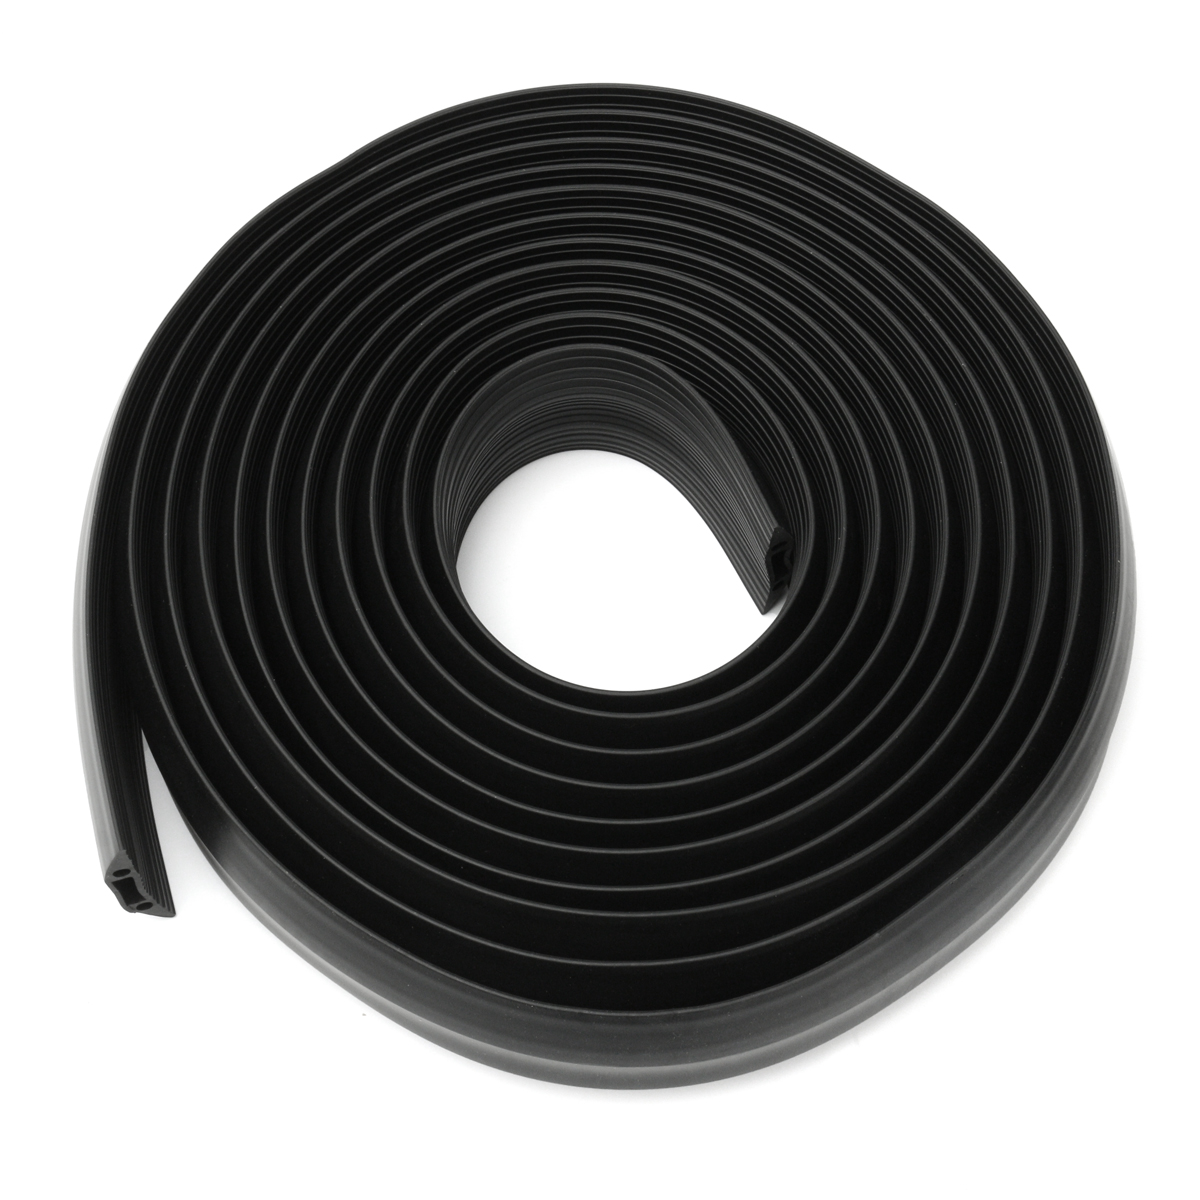 Heavy Duty Rubber Cable Protector Bumper Tidy Floor Trunking Cover Sleeves 1M/2M/3M/4M/5M/10M